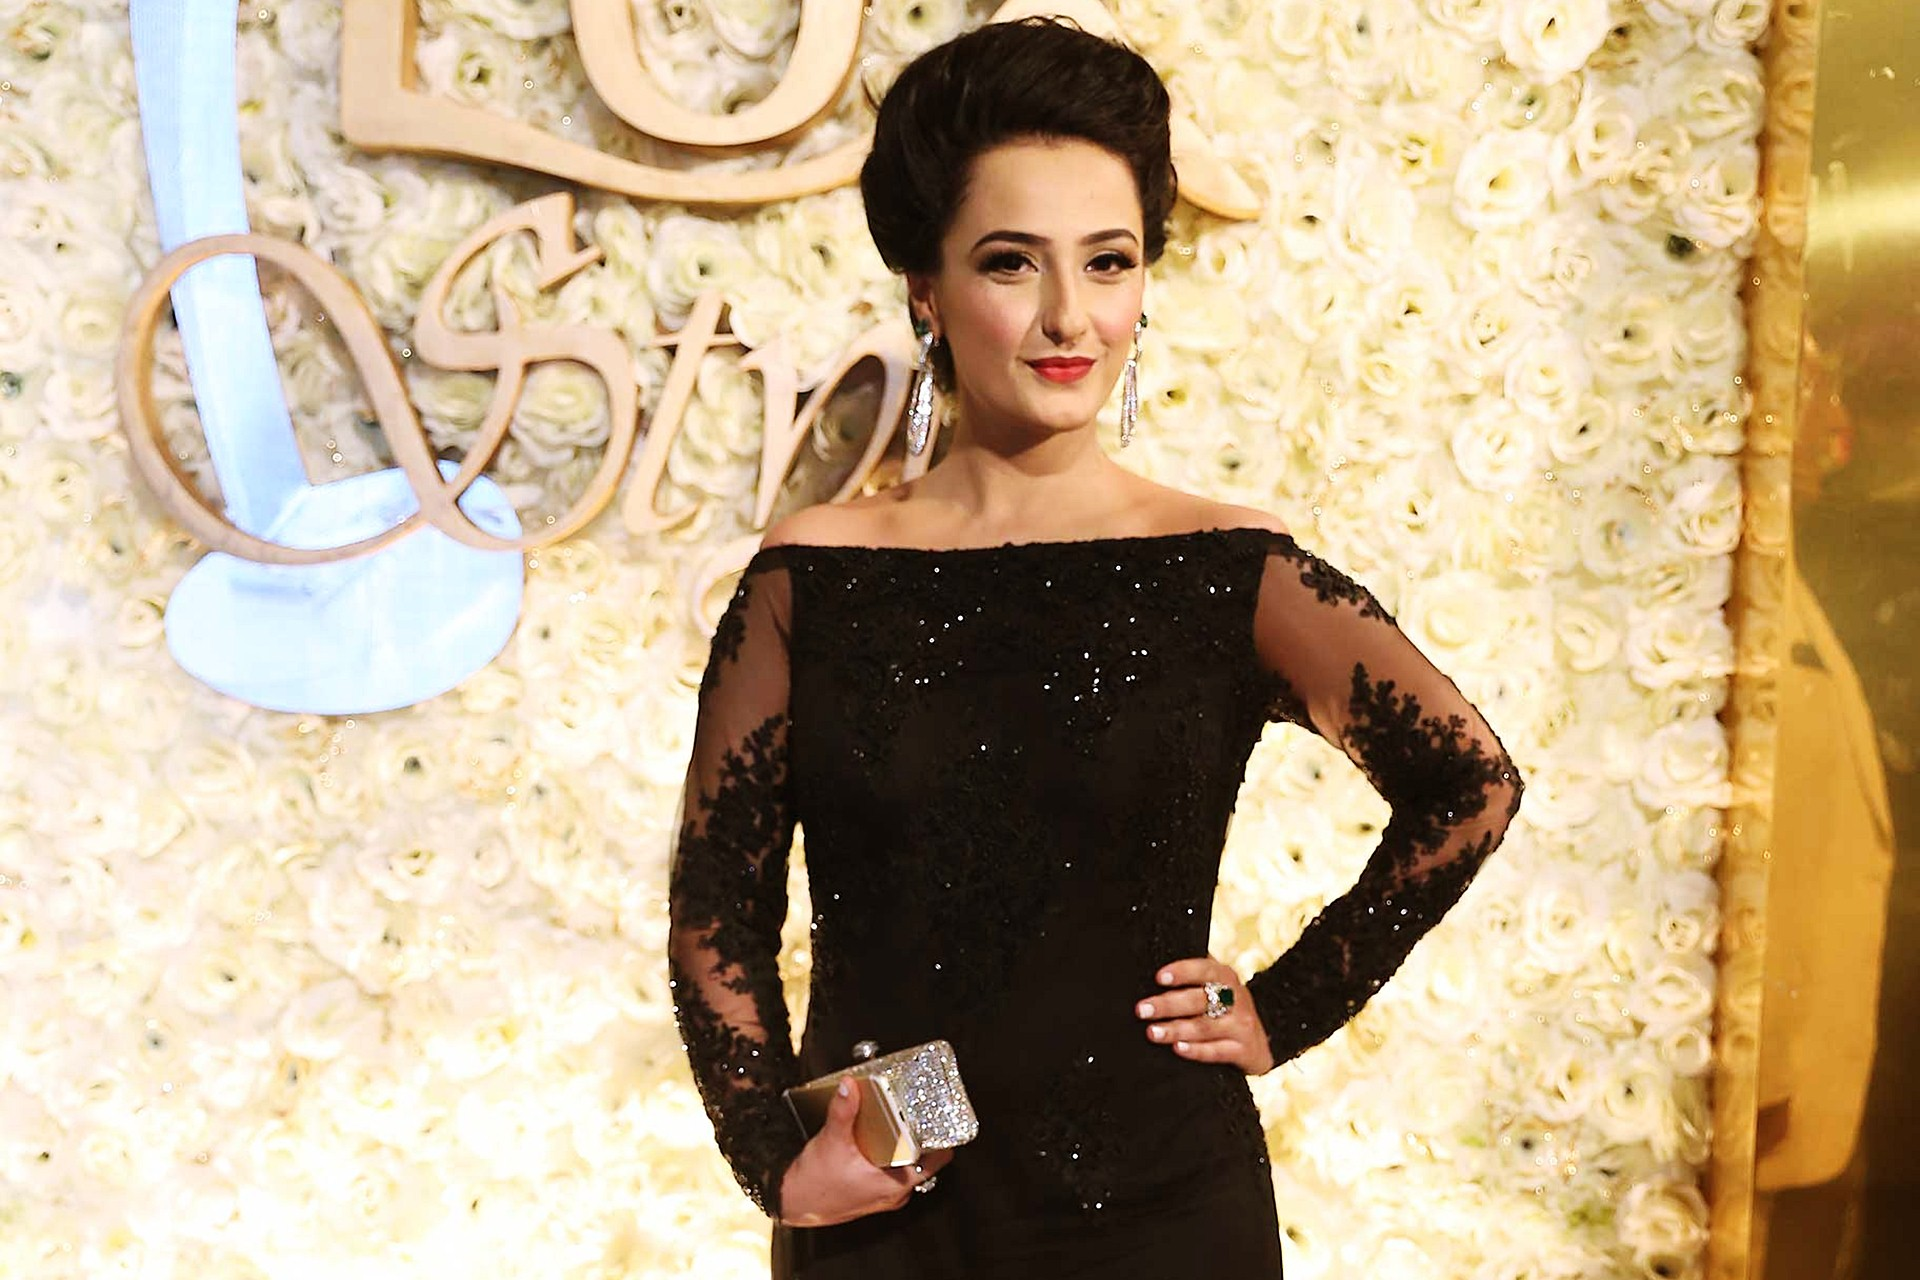 Momal Sheikh date of birth, age, height, weight, education, affair ...